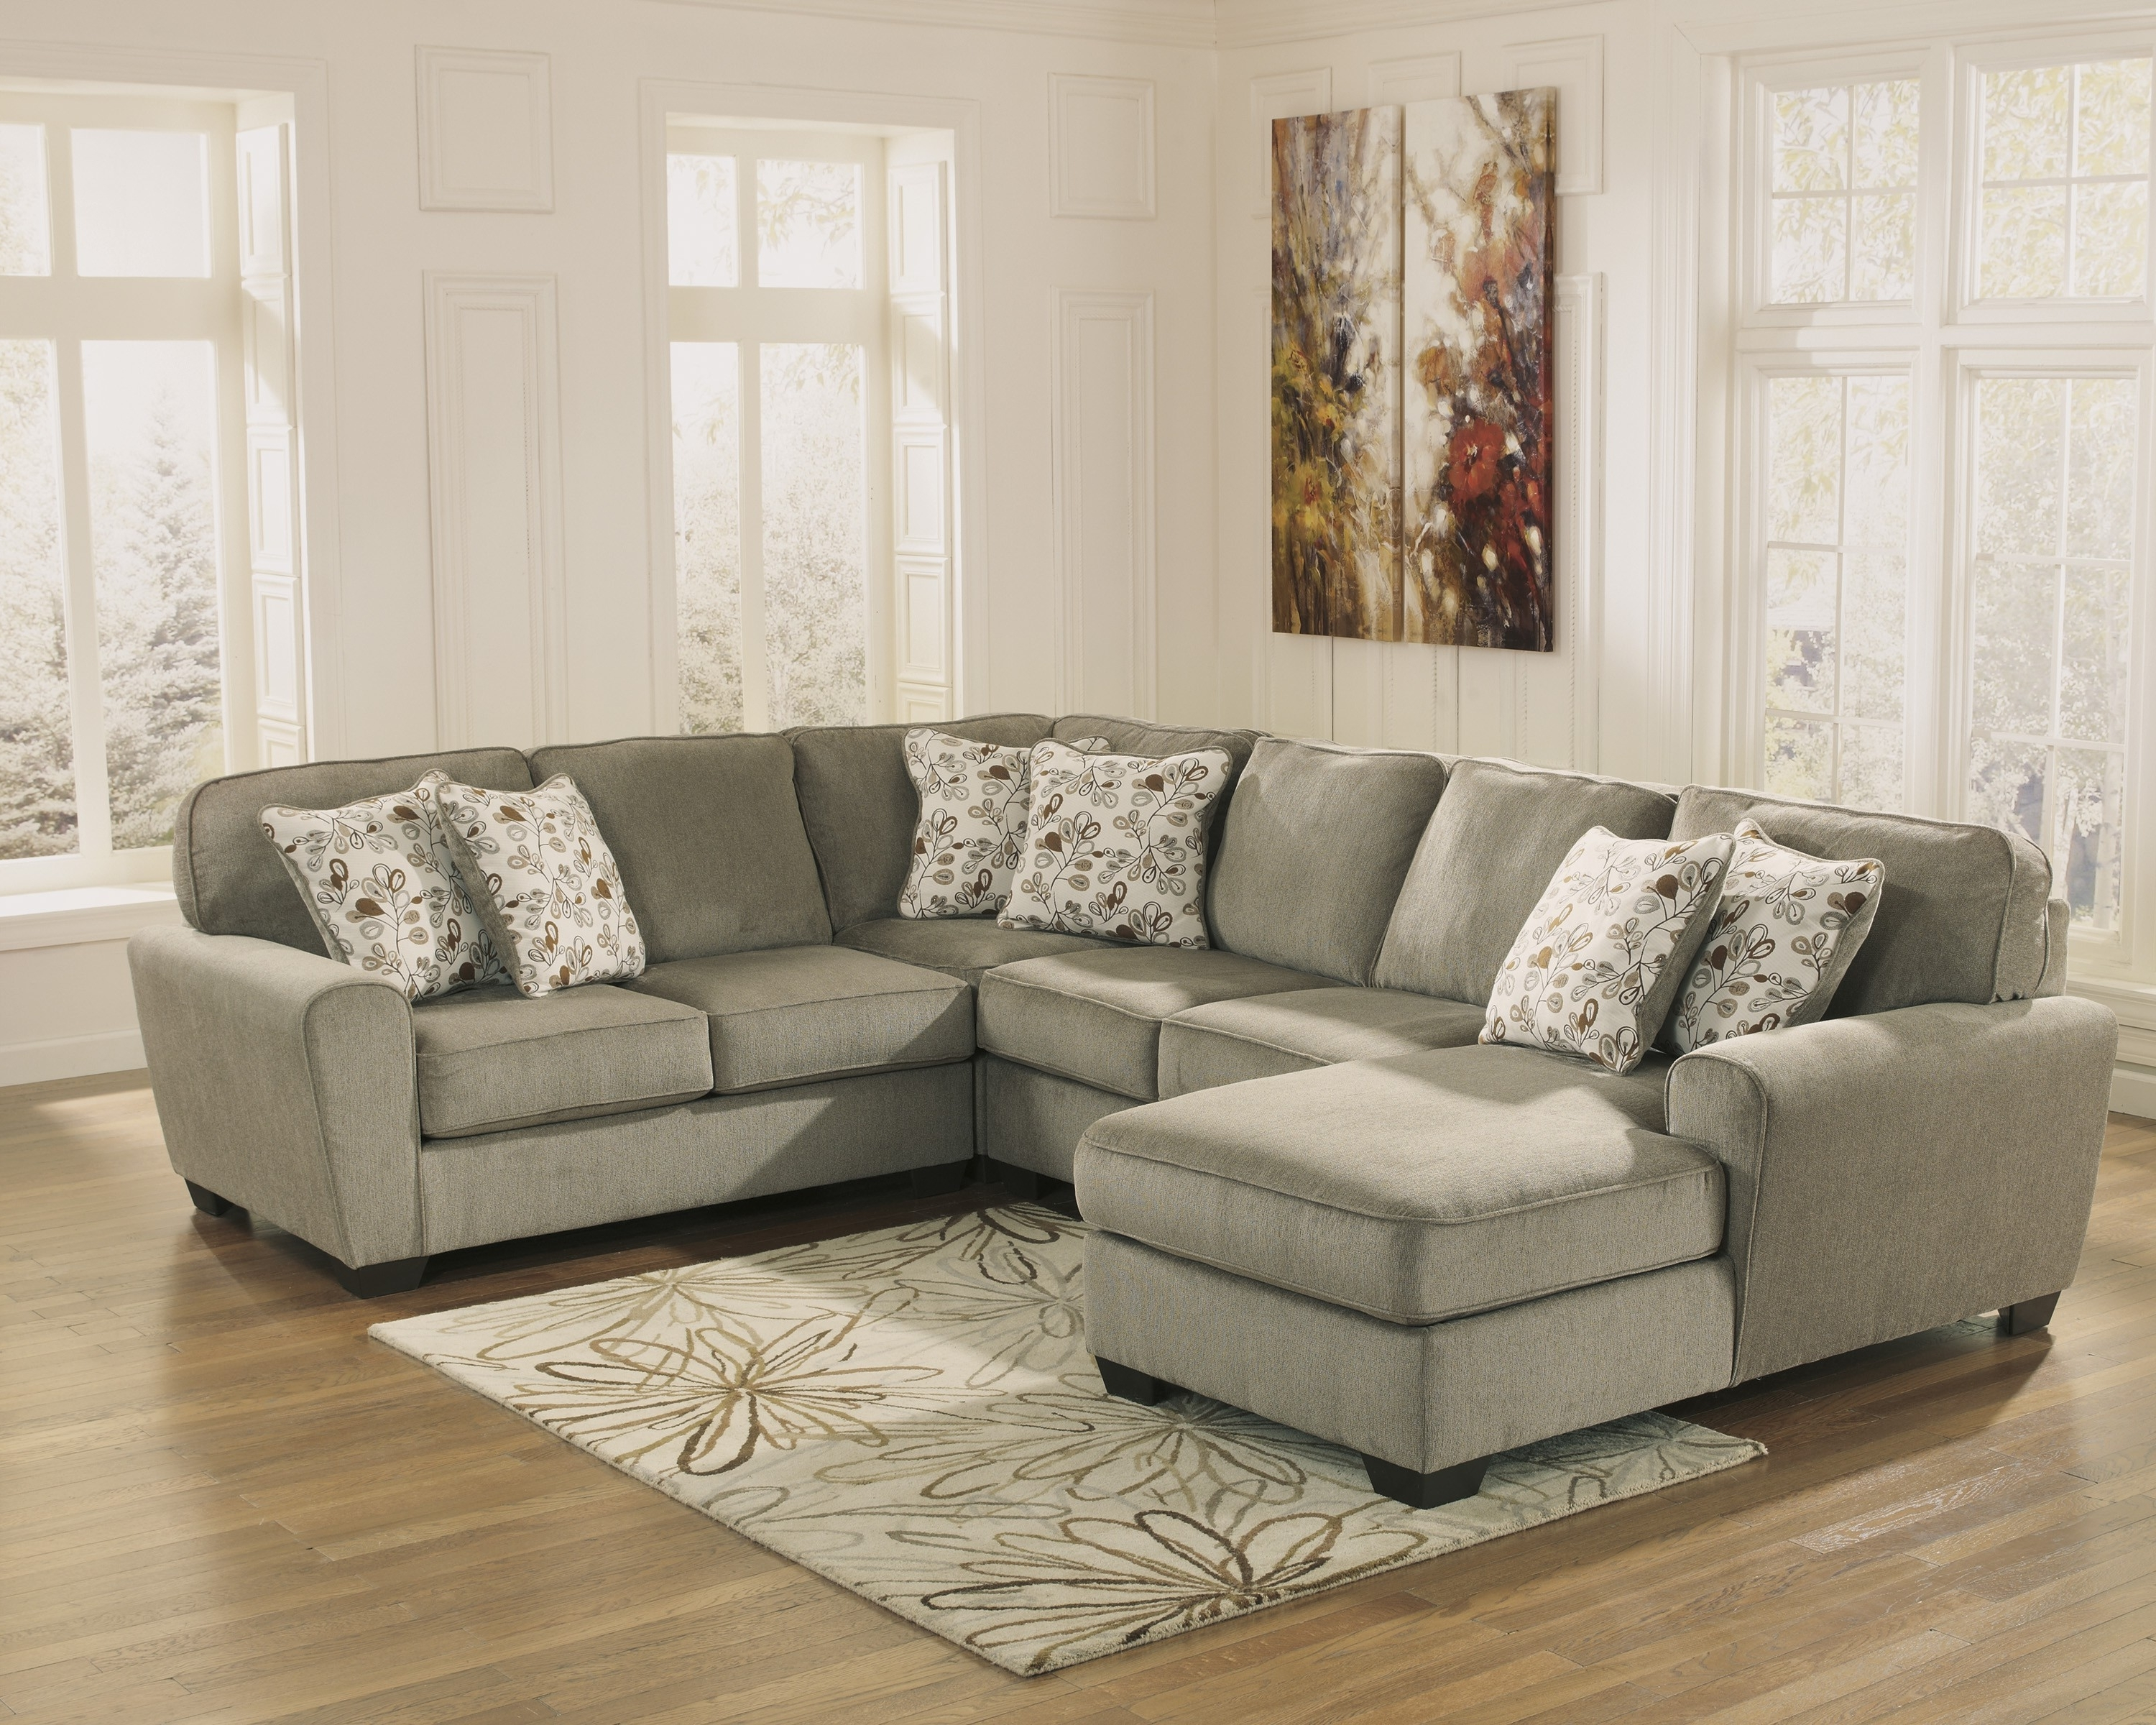 4 Piece Sectional Sofas With Chaise Throughout Latest Patola Park Patina 4 Piece Sectional Set With Left Arm Facing (View 9 of 15)